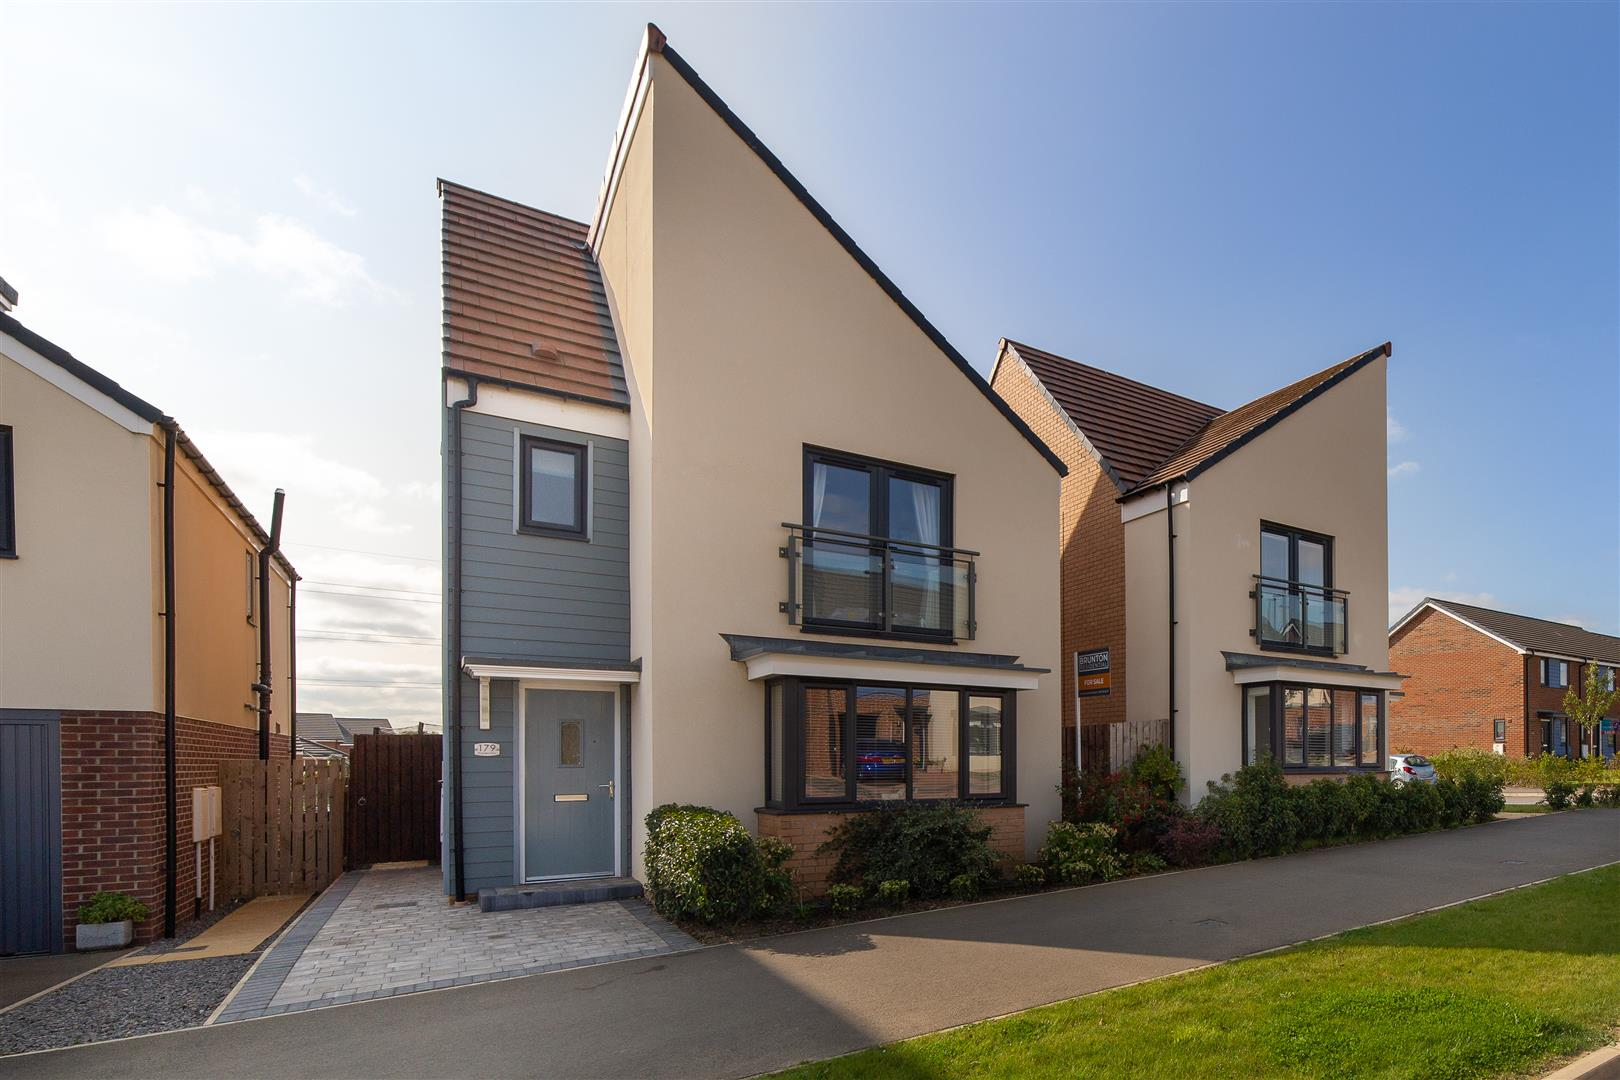 4 bed detached house for sale in Newcastle Upon Tyne, NE13 9DS - Property Image 1